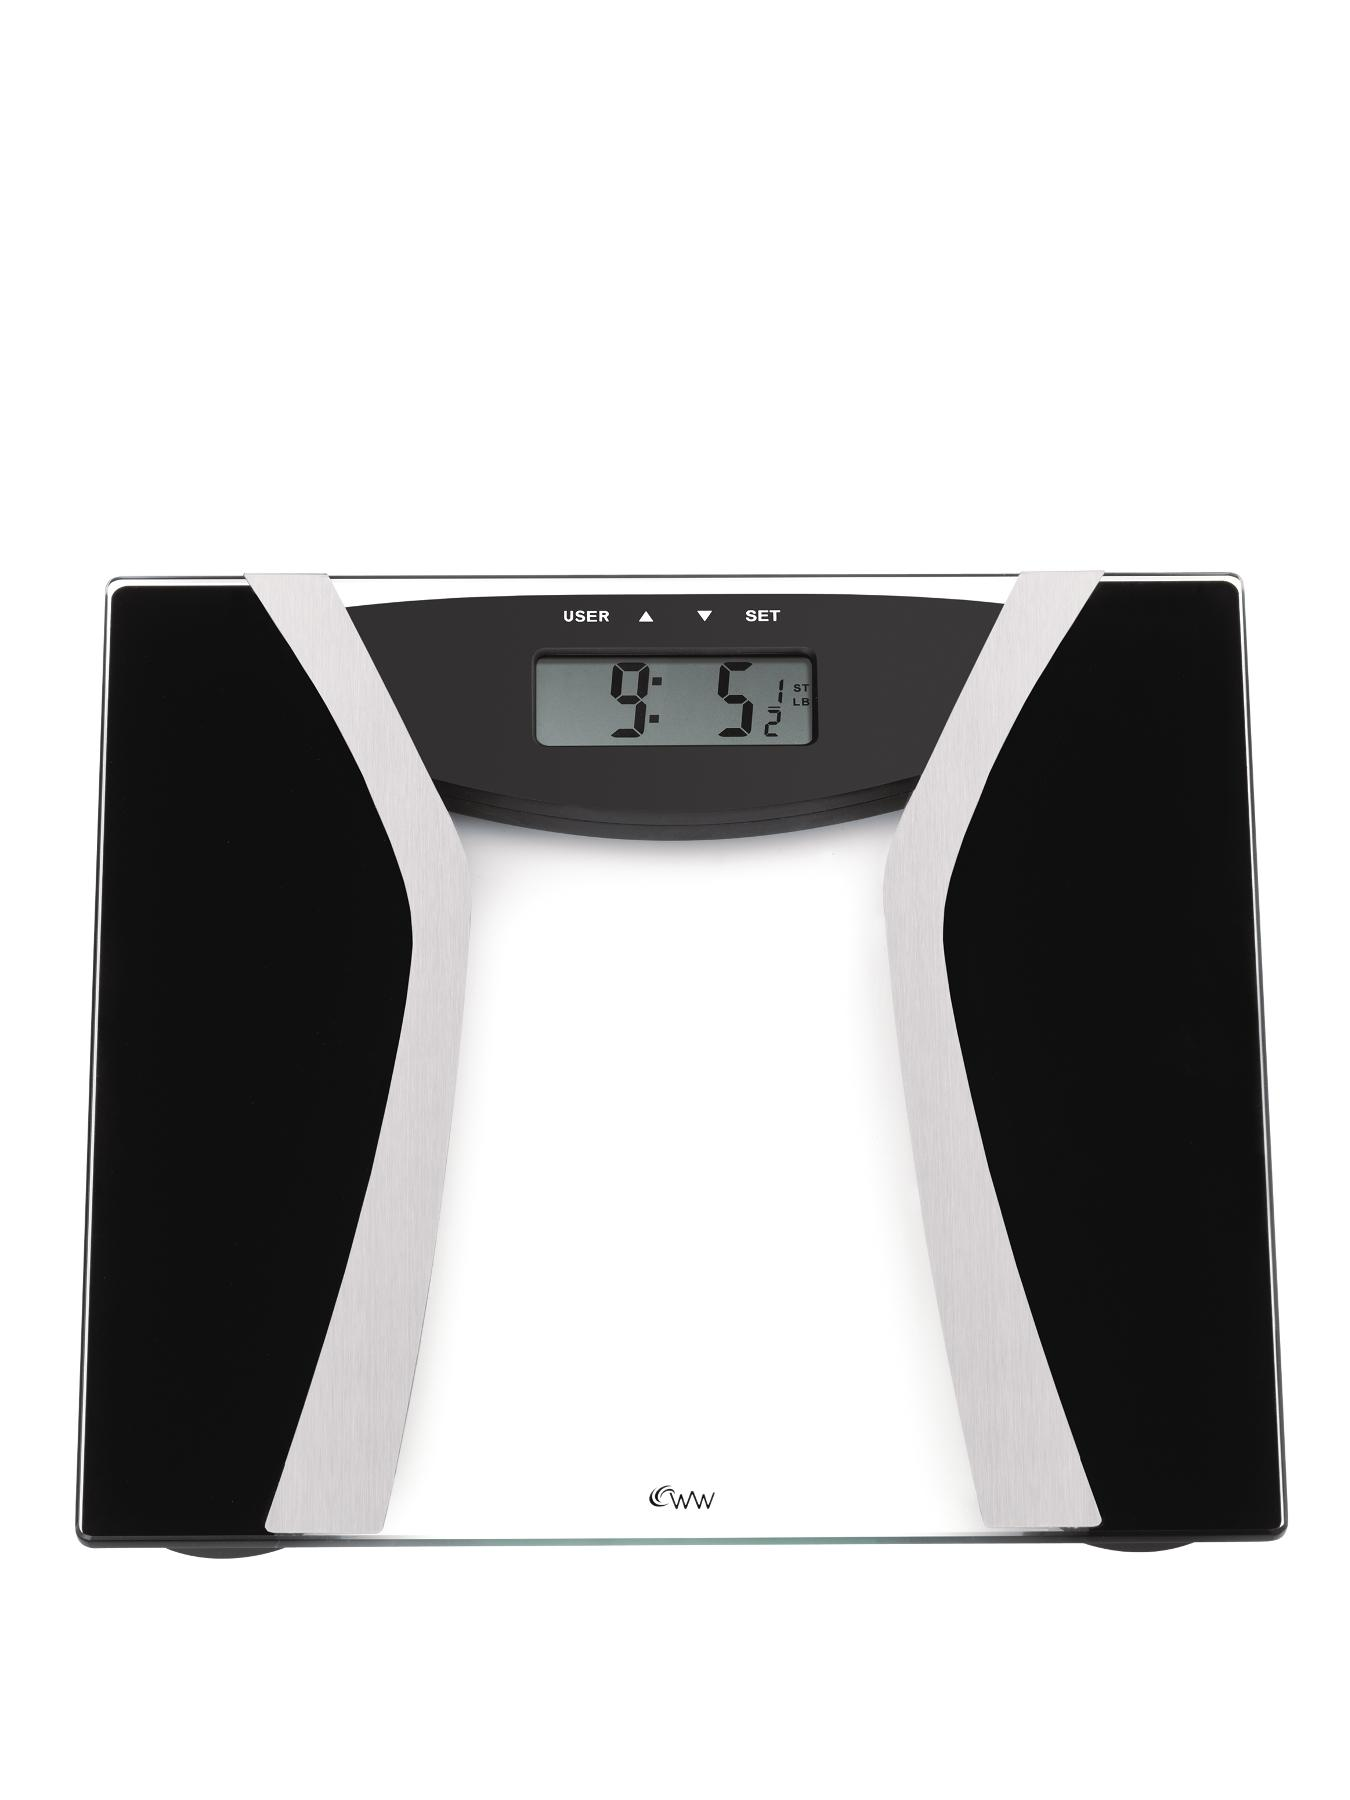 Weight Watchers 8936U Ultimate Glass Body Fat Tracker Scales